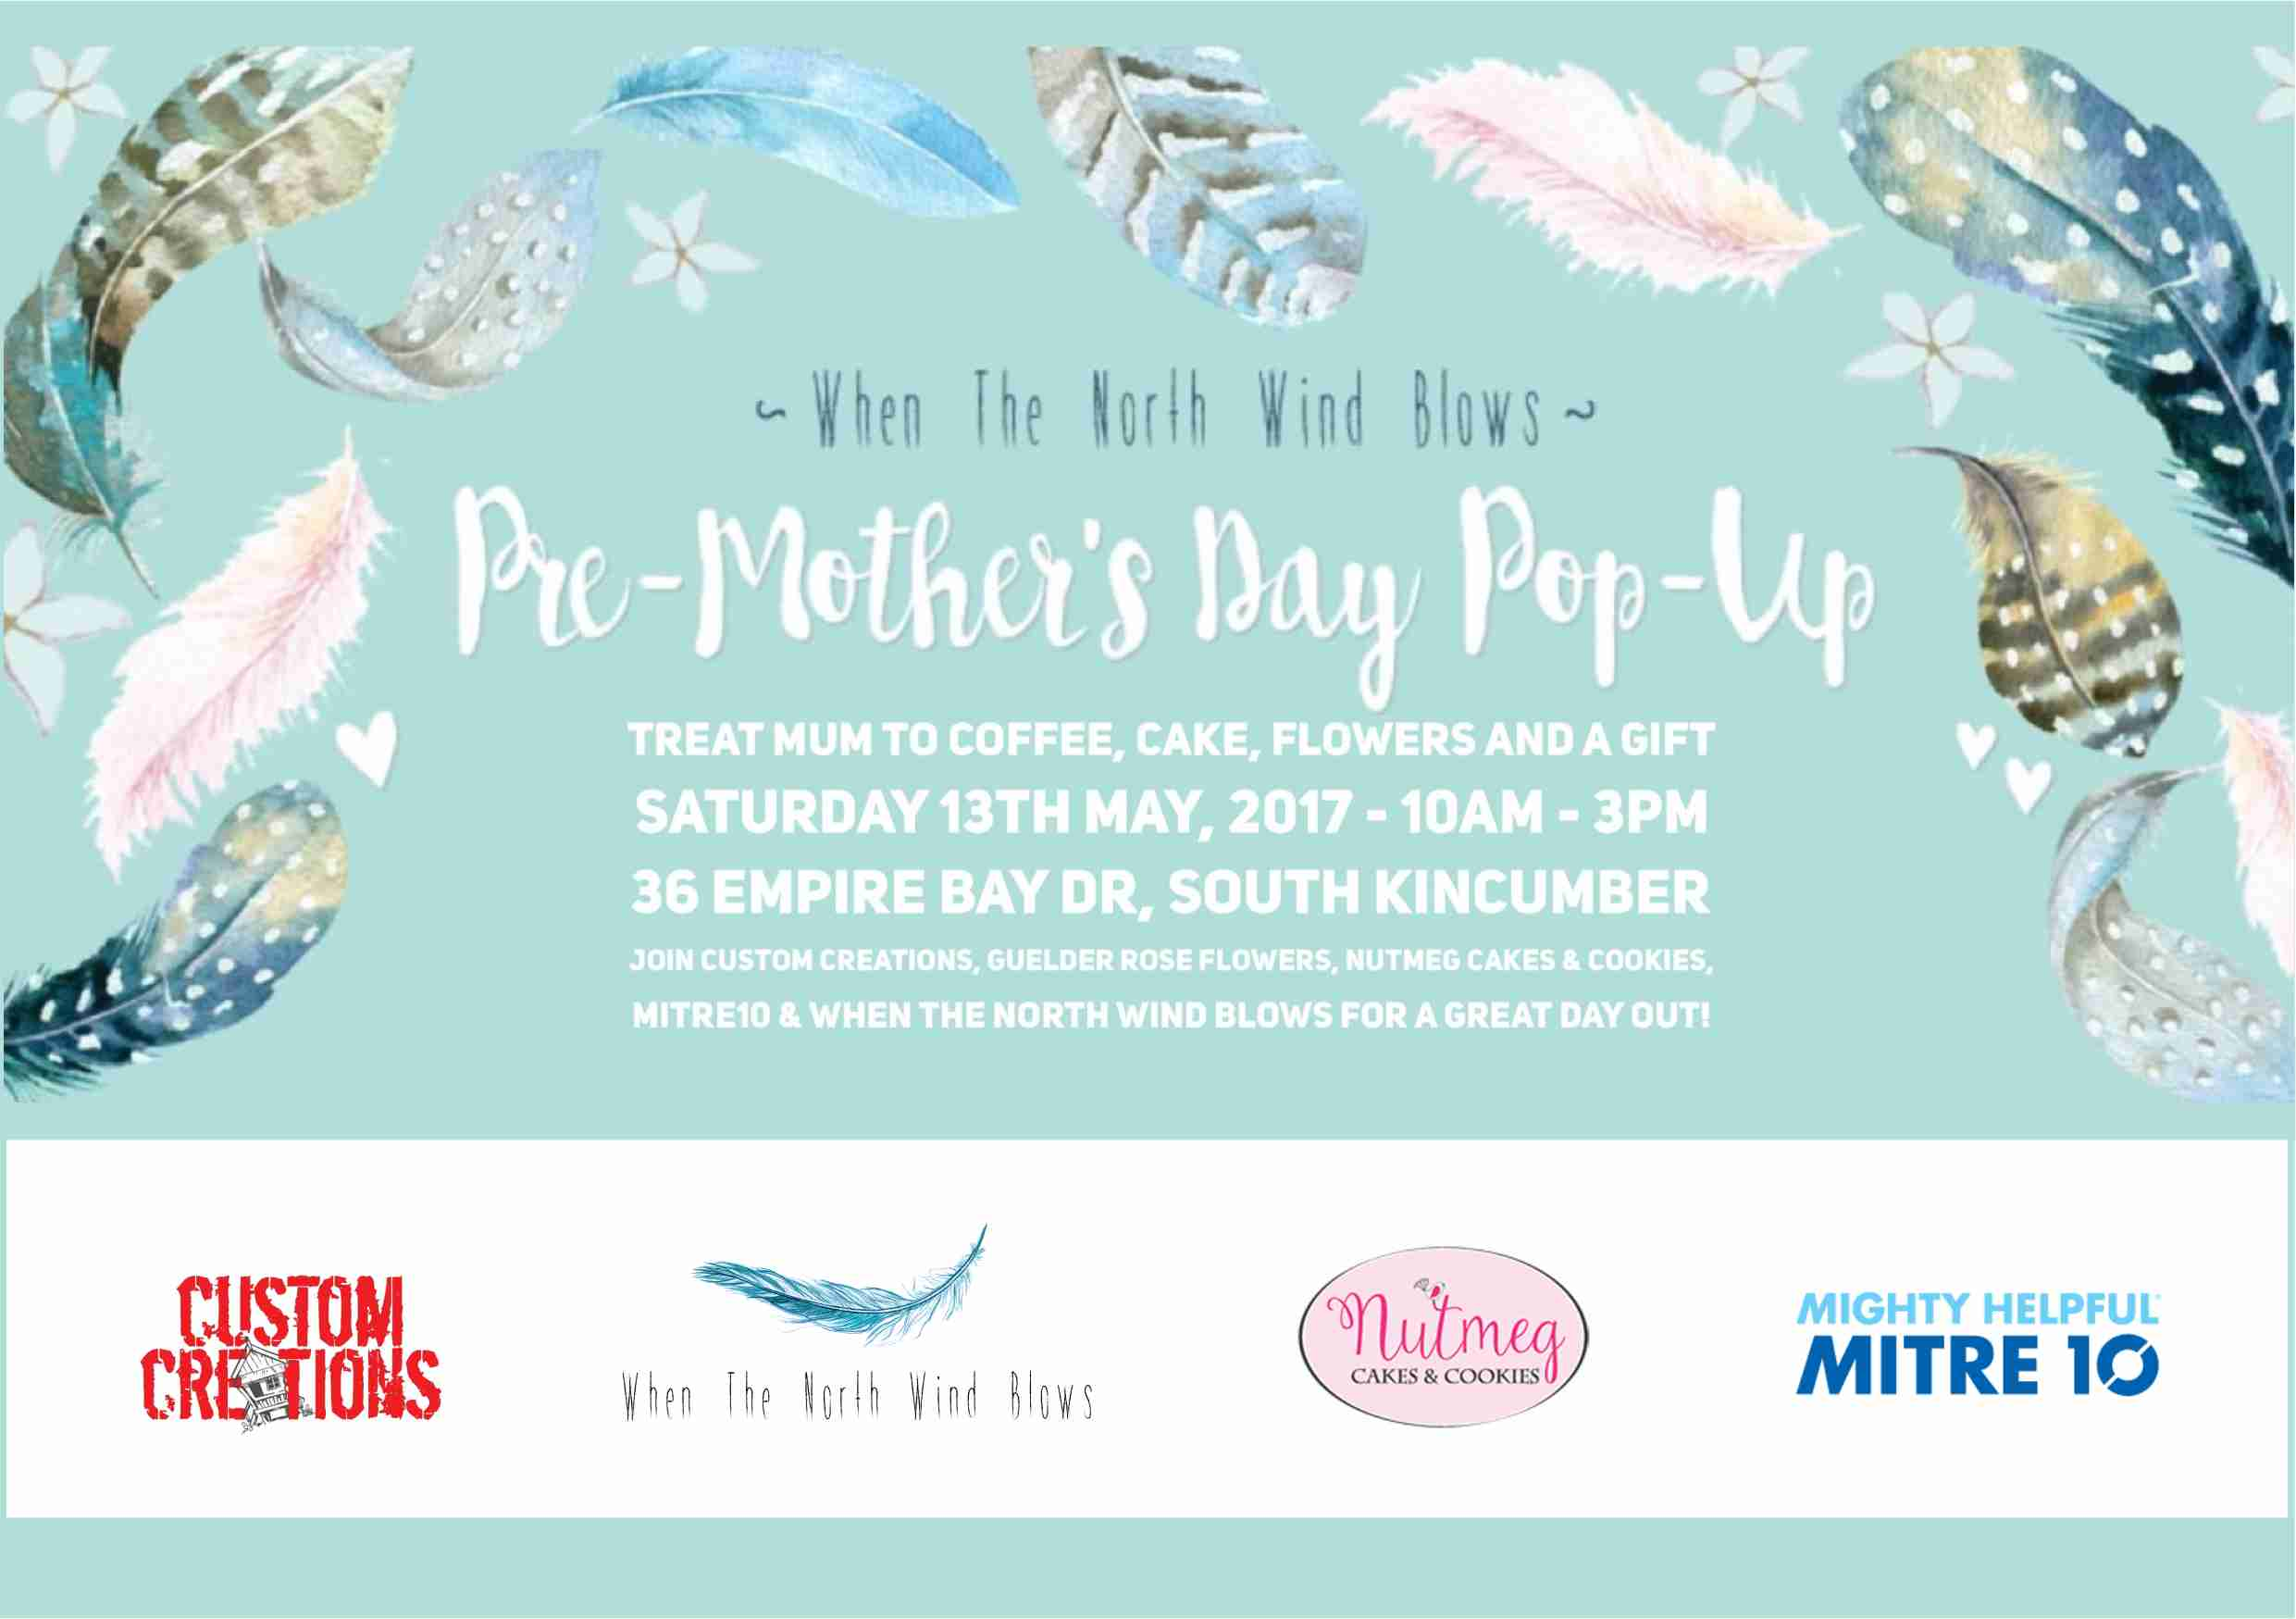 Pre-Mother's Day Pop-up Event